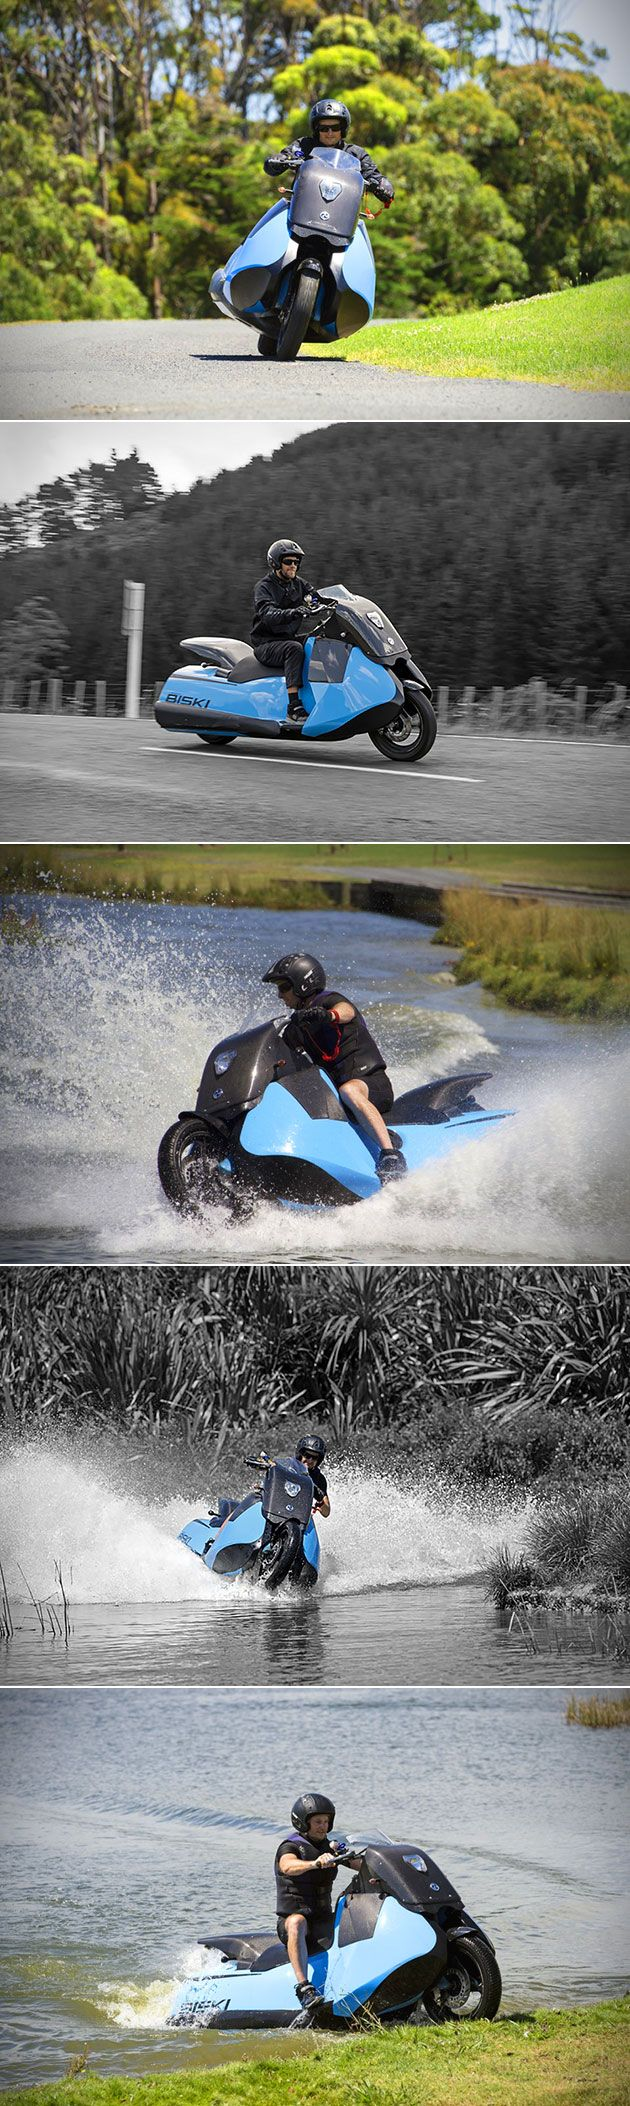 Gibbs biski is a motorcycle on land but go into water the amphibious vehicle becomes a jet ski